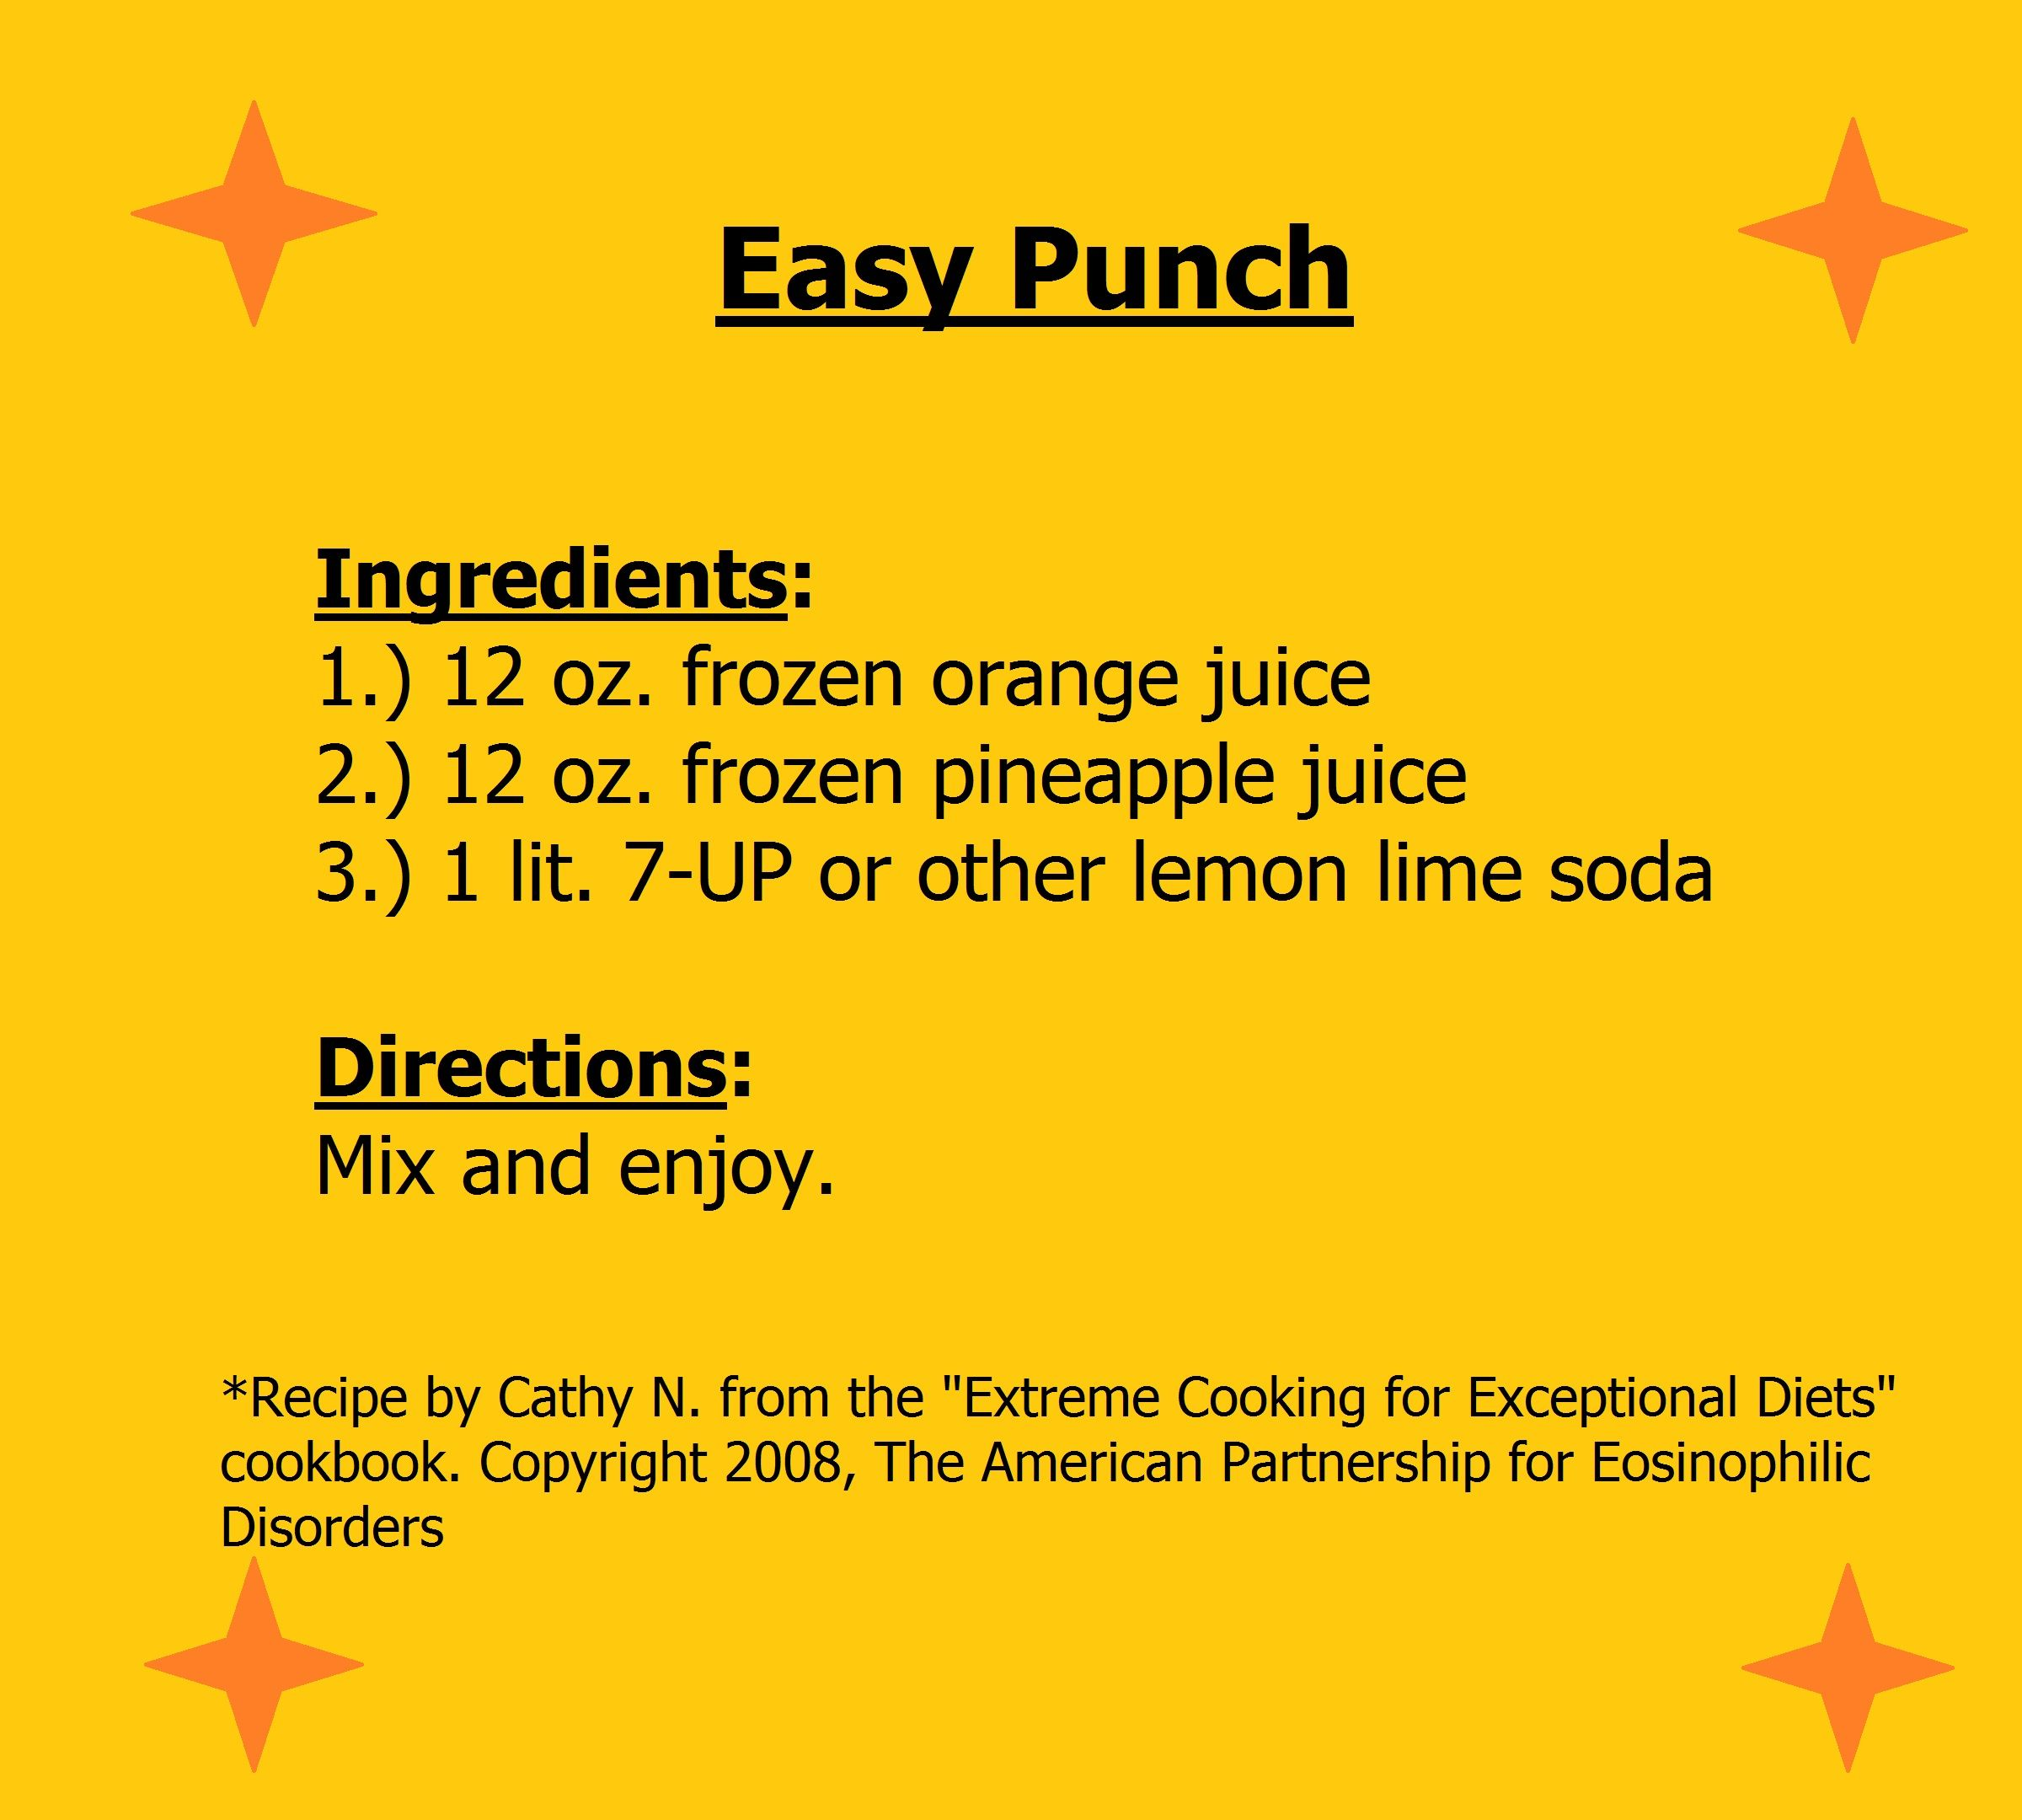 An Easy Punch Recipe For The Holidays. Please Review All